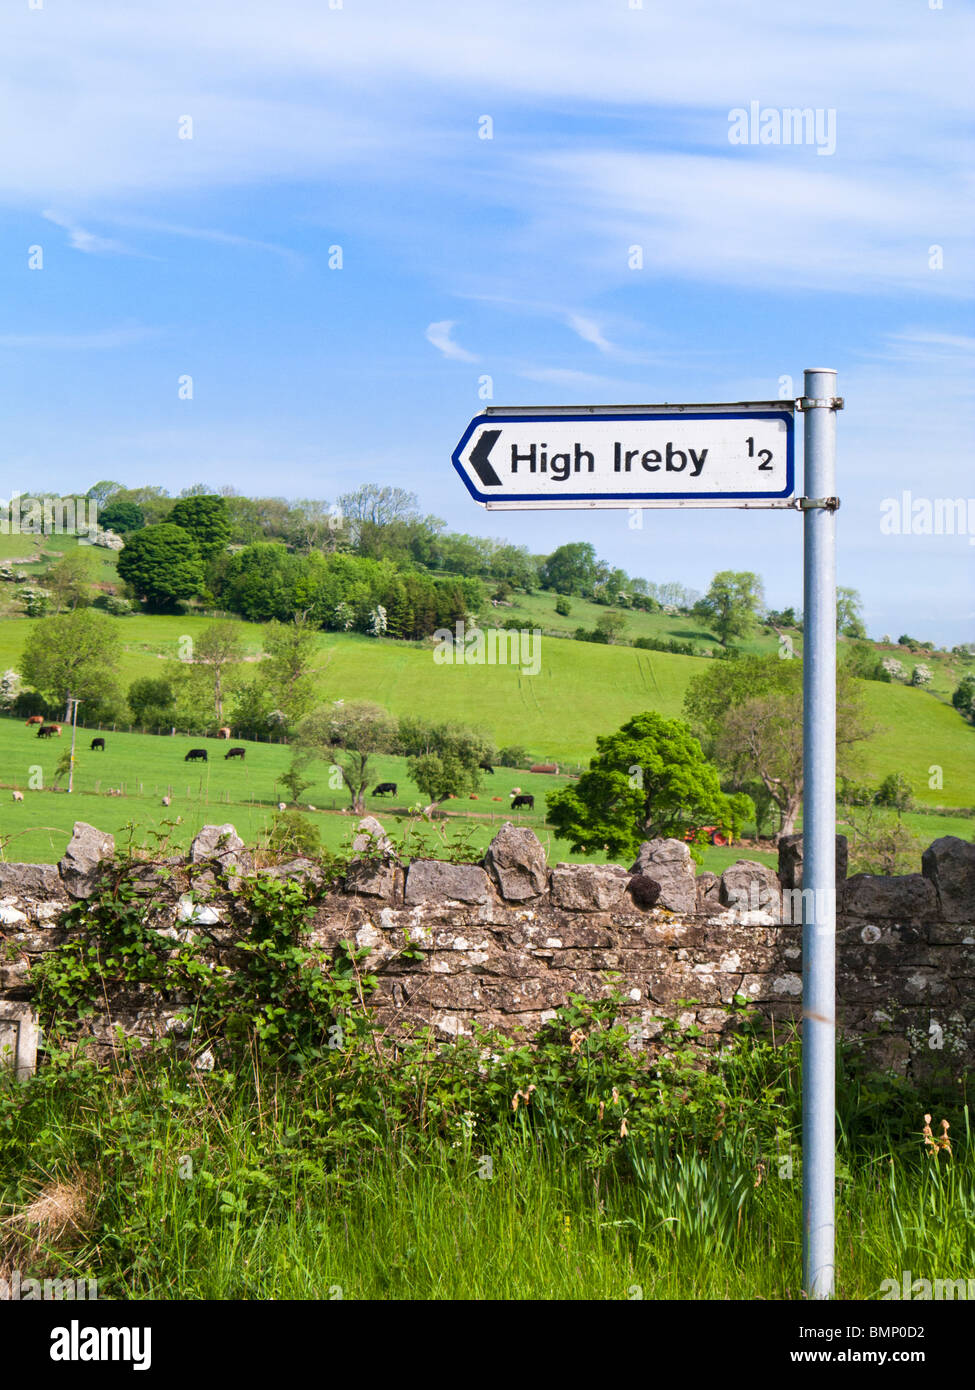 Road sign, to local village of High Ireby, The Lake District countryside, UK - Stock Image